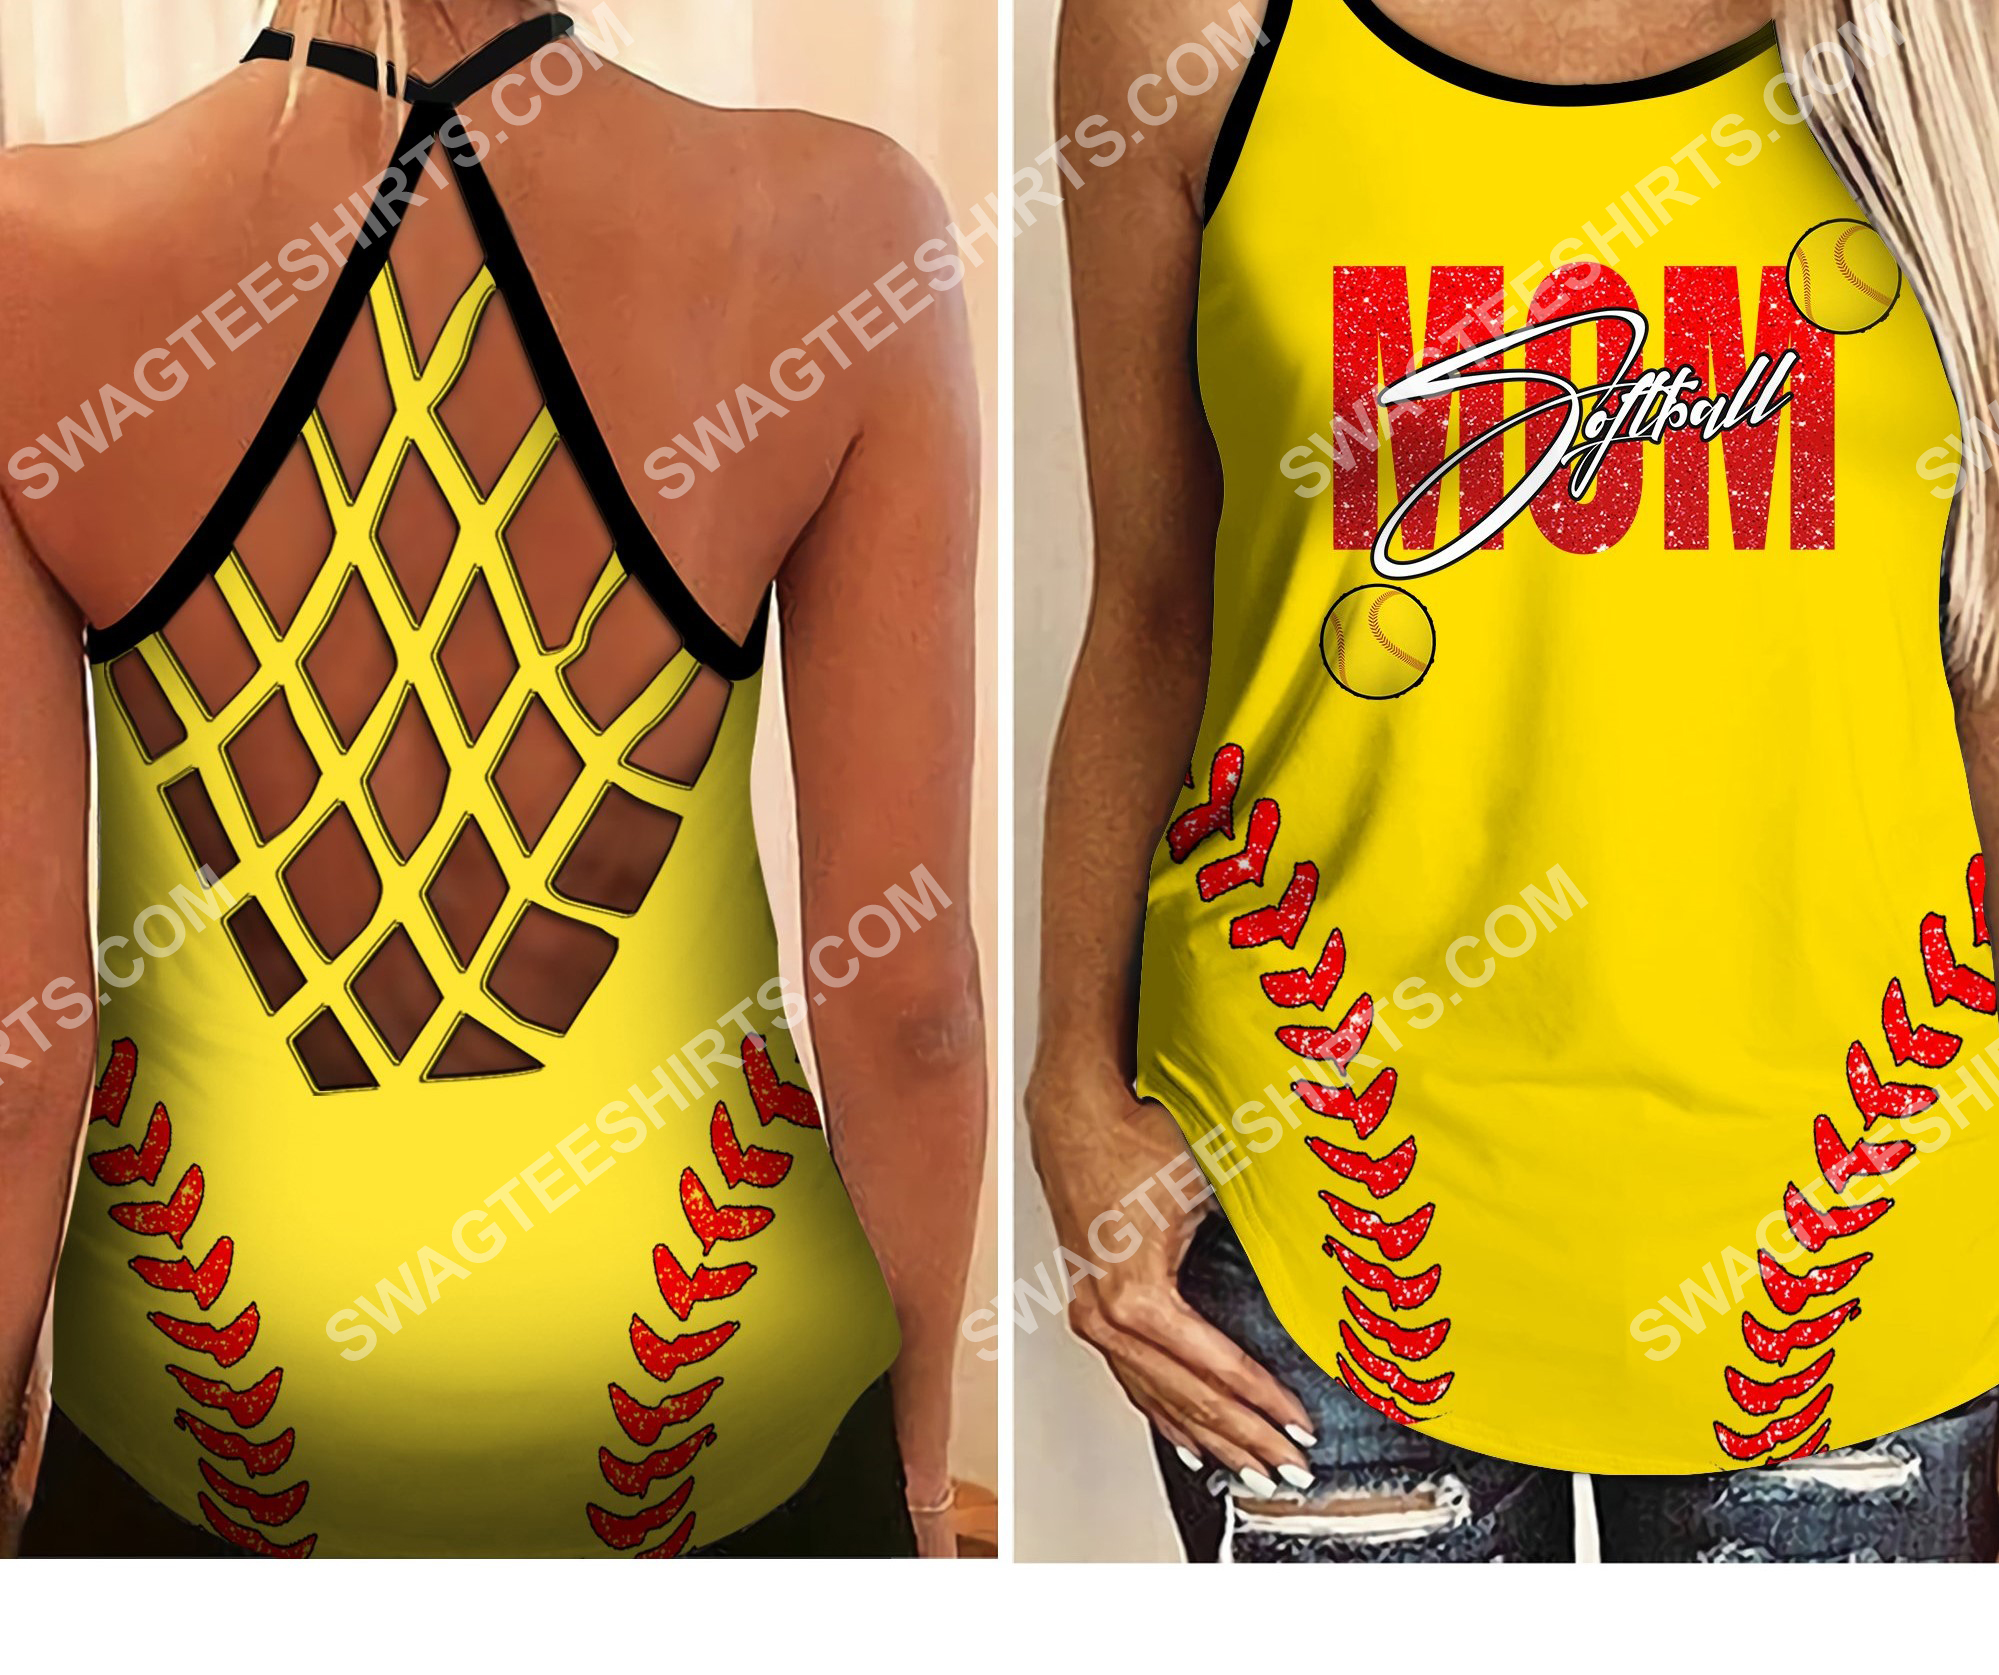 mom softball all over printed criss-cross tank top 2 - Copy